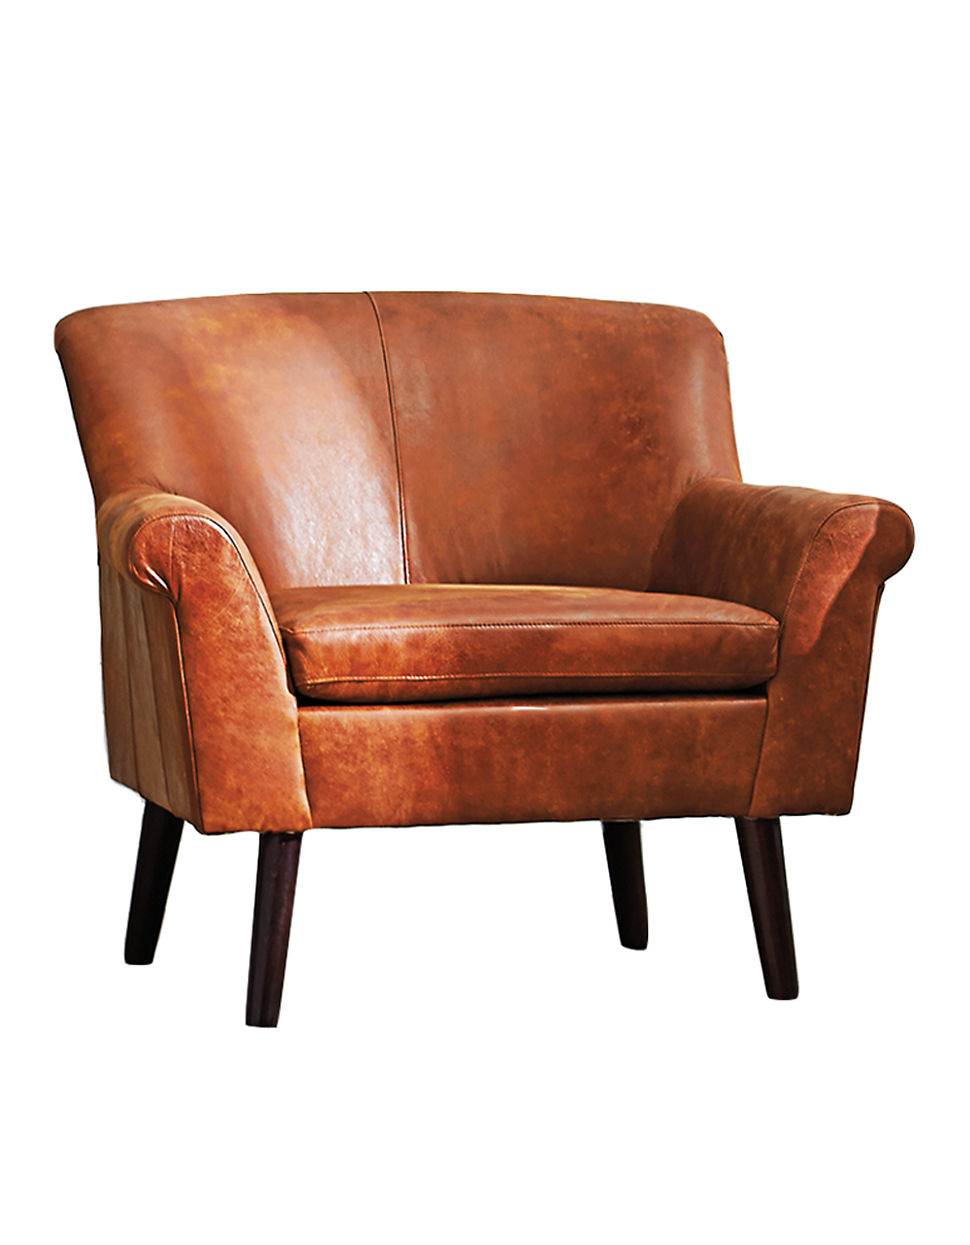 Narrow Armchair Accent Furniture Furniture Home Hudsons Bay